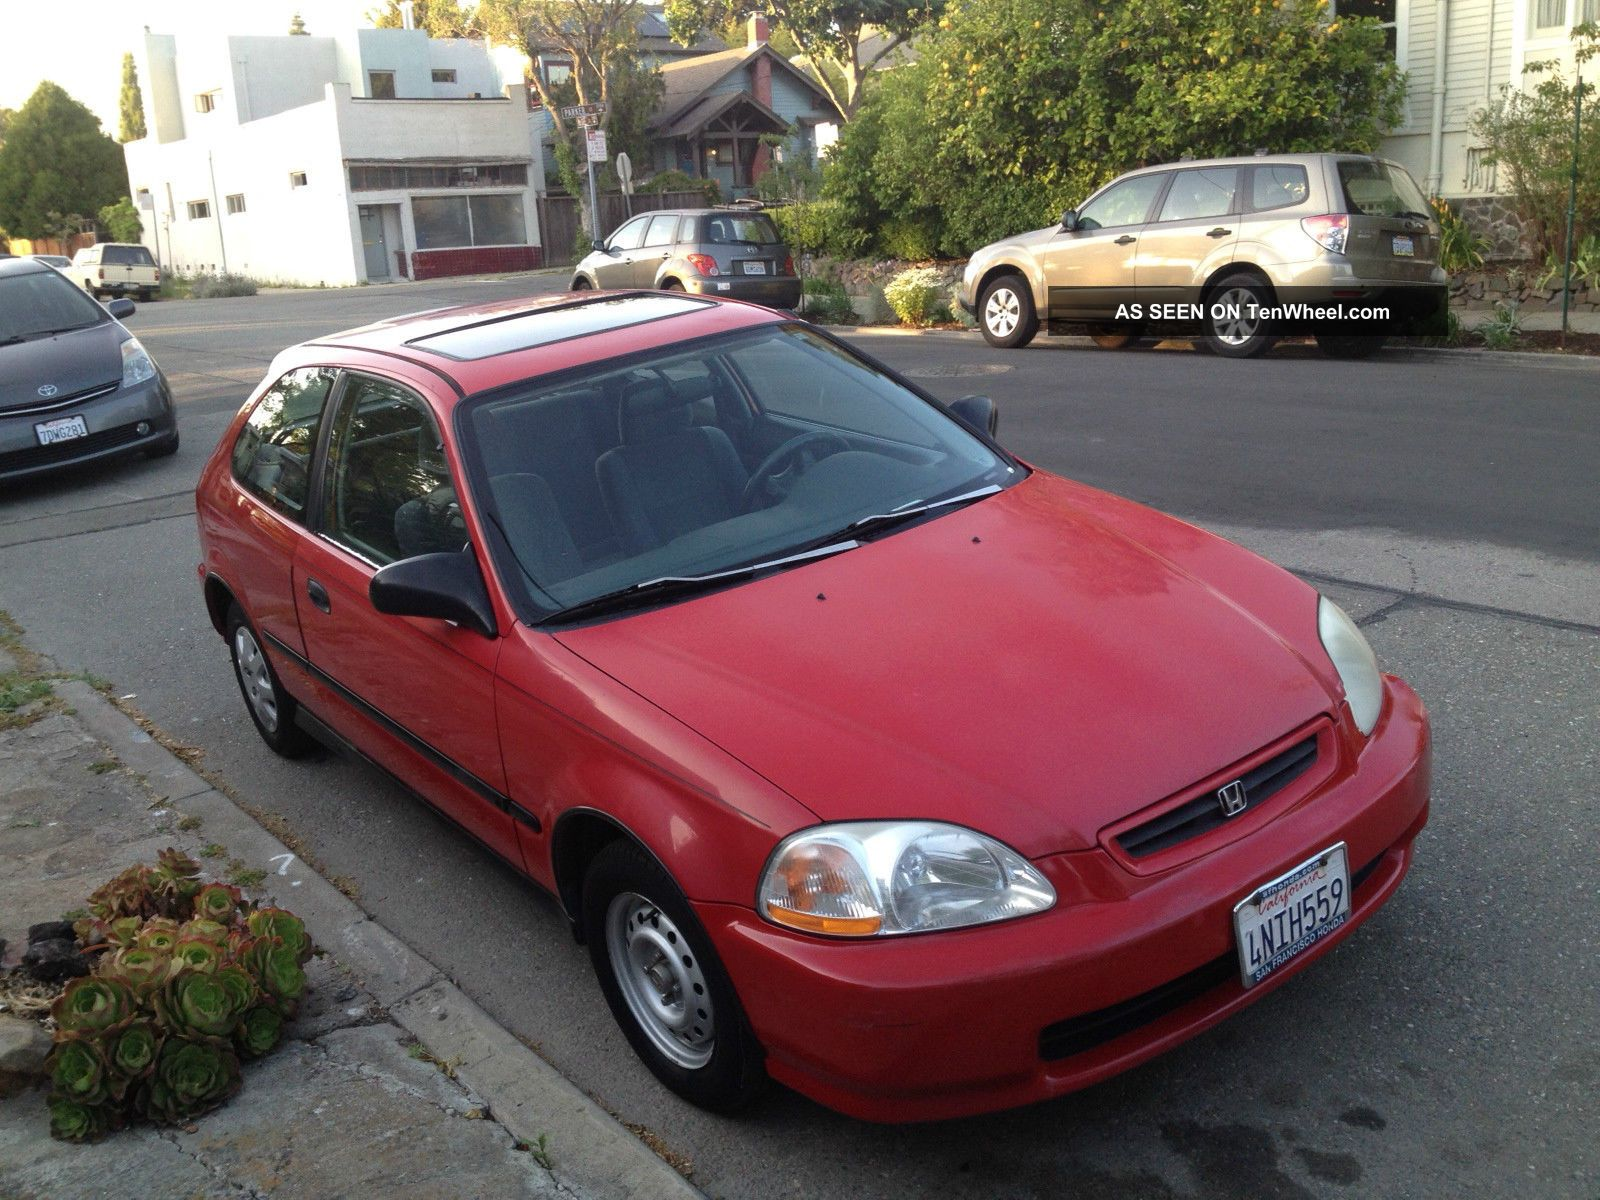 1996 Honda Civic Hatchback - Runs Well,  Ac,  Stereo Cd, Civic photo